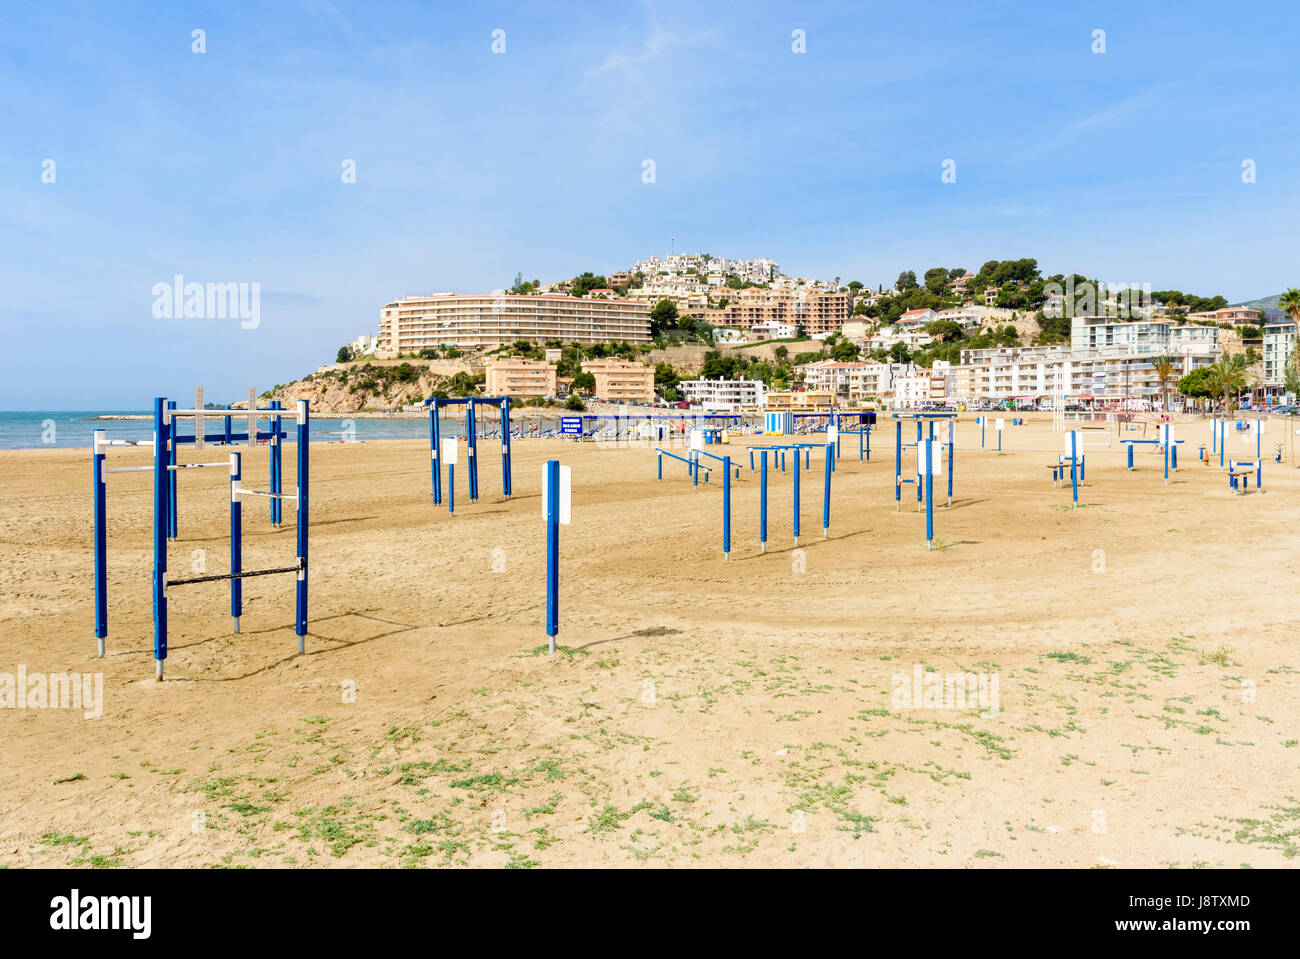 Exercise equipment on Playa Sur, the South Beach, Peniscola, Spain - Stock Image